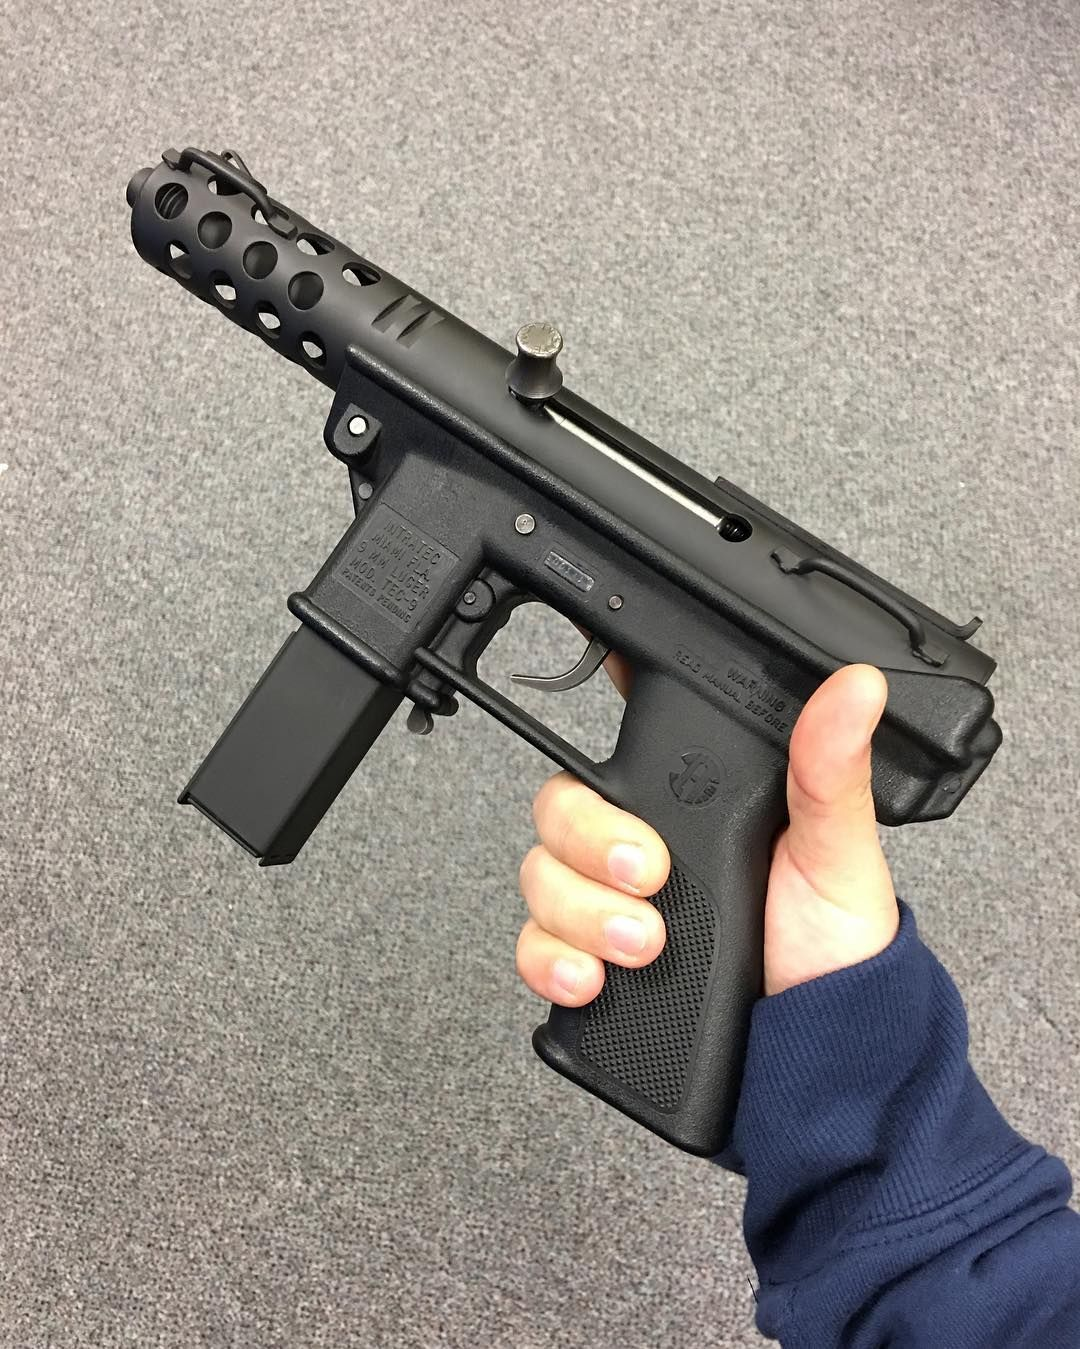 9 More Crazy Weapons: Name This Weird Looking Pistol